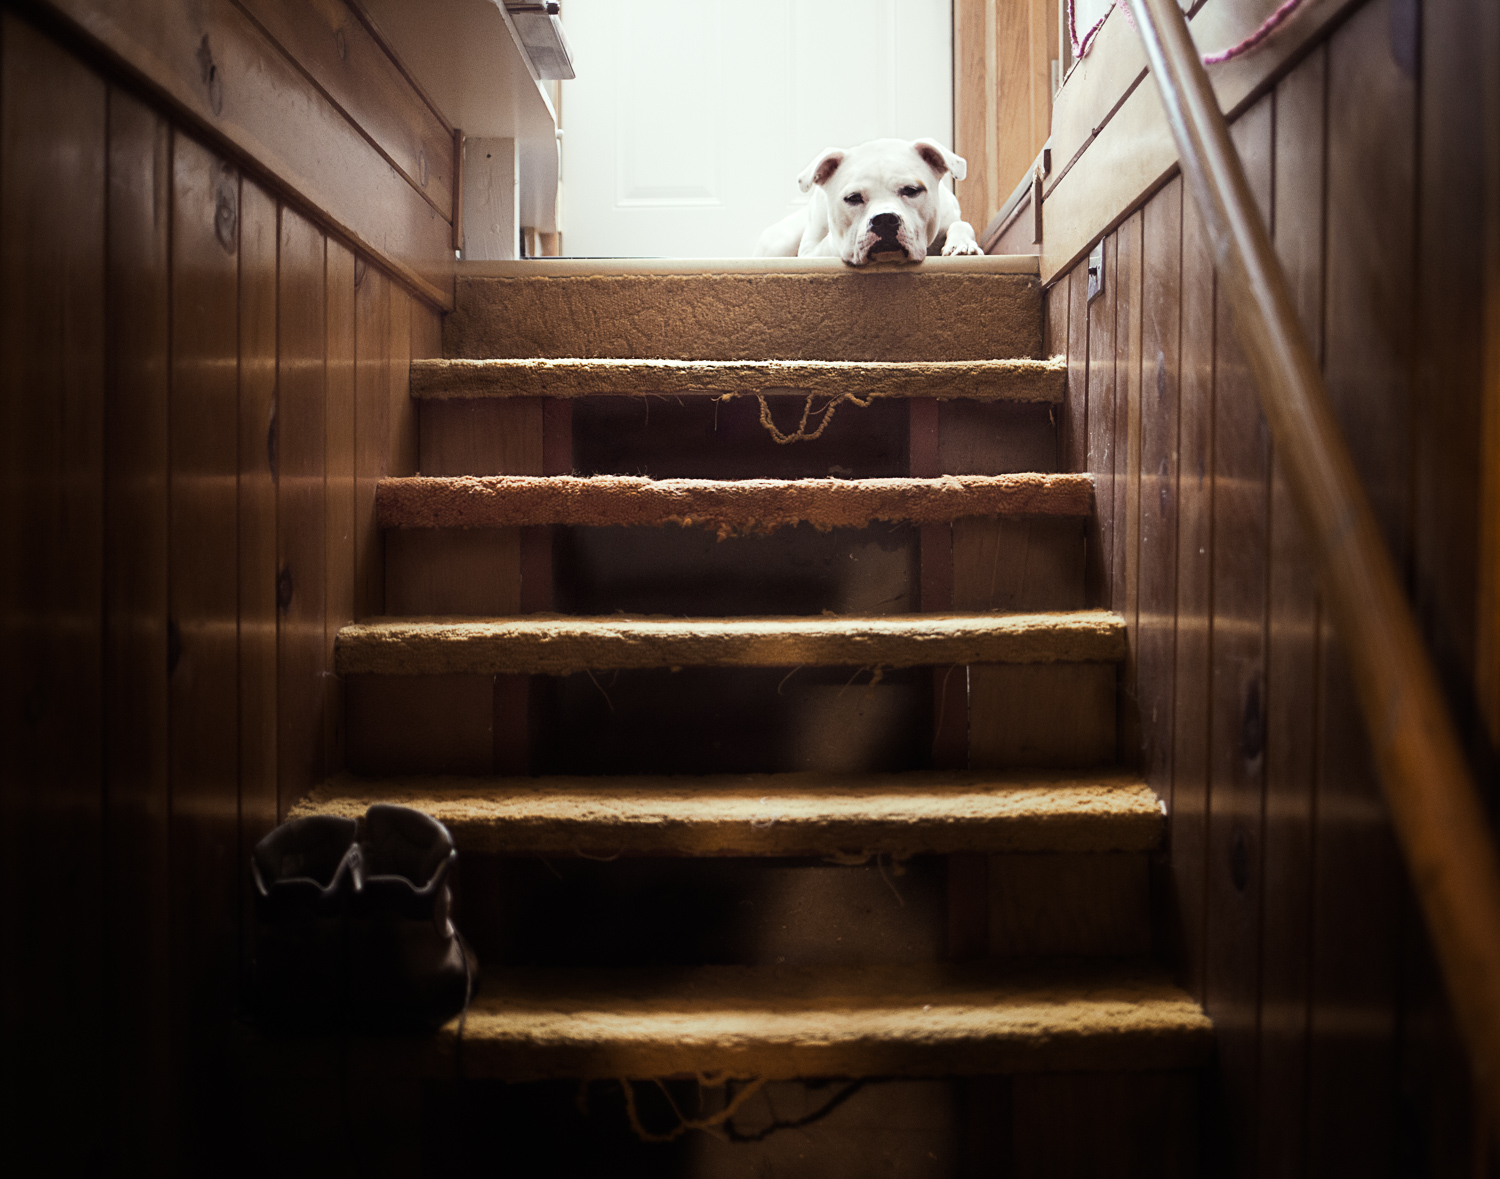 bull dog sitting at the top of stairs